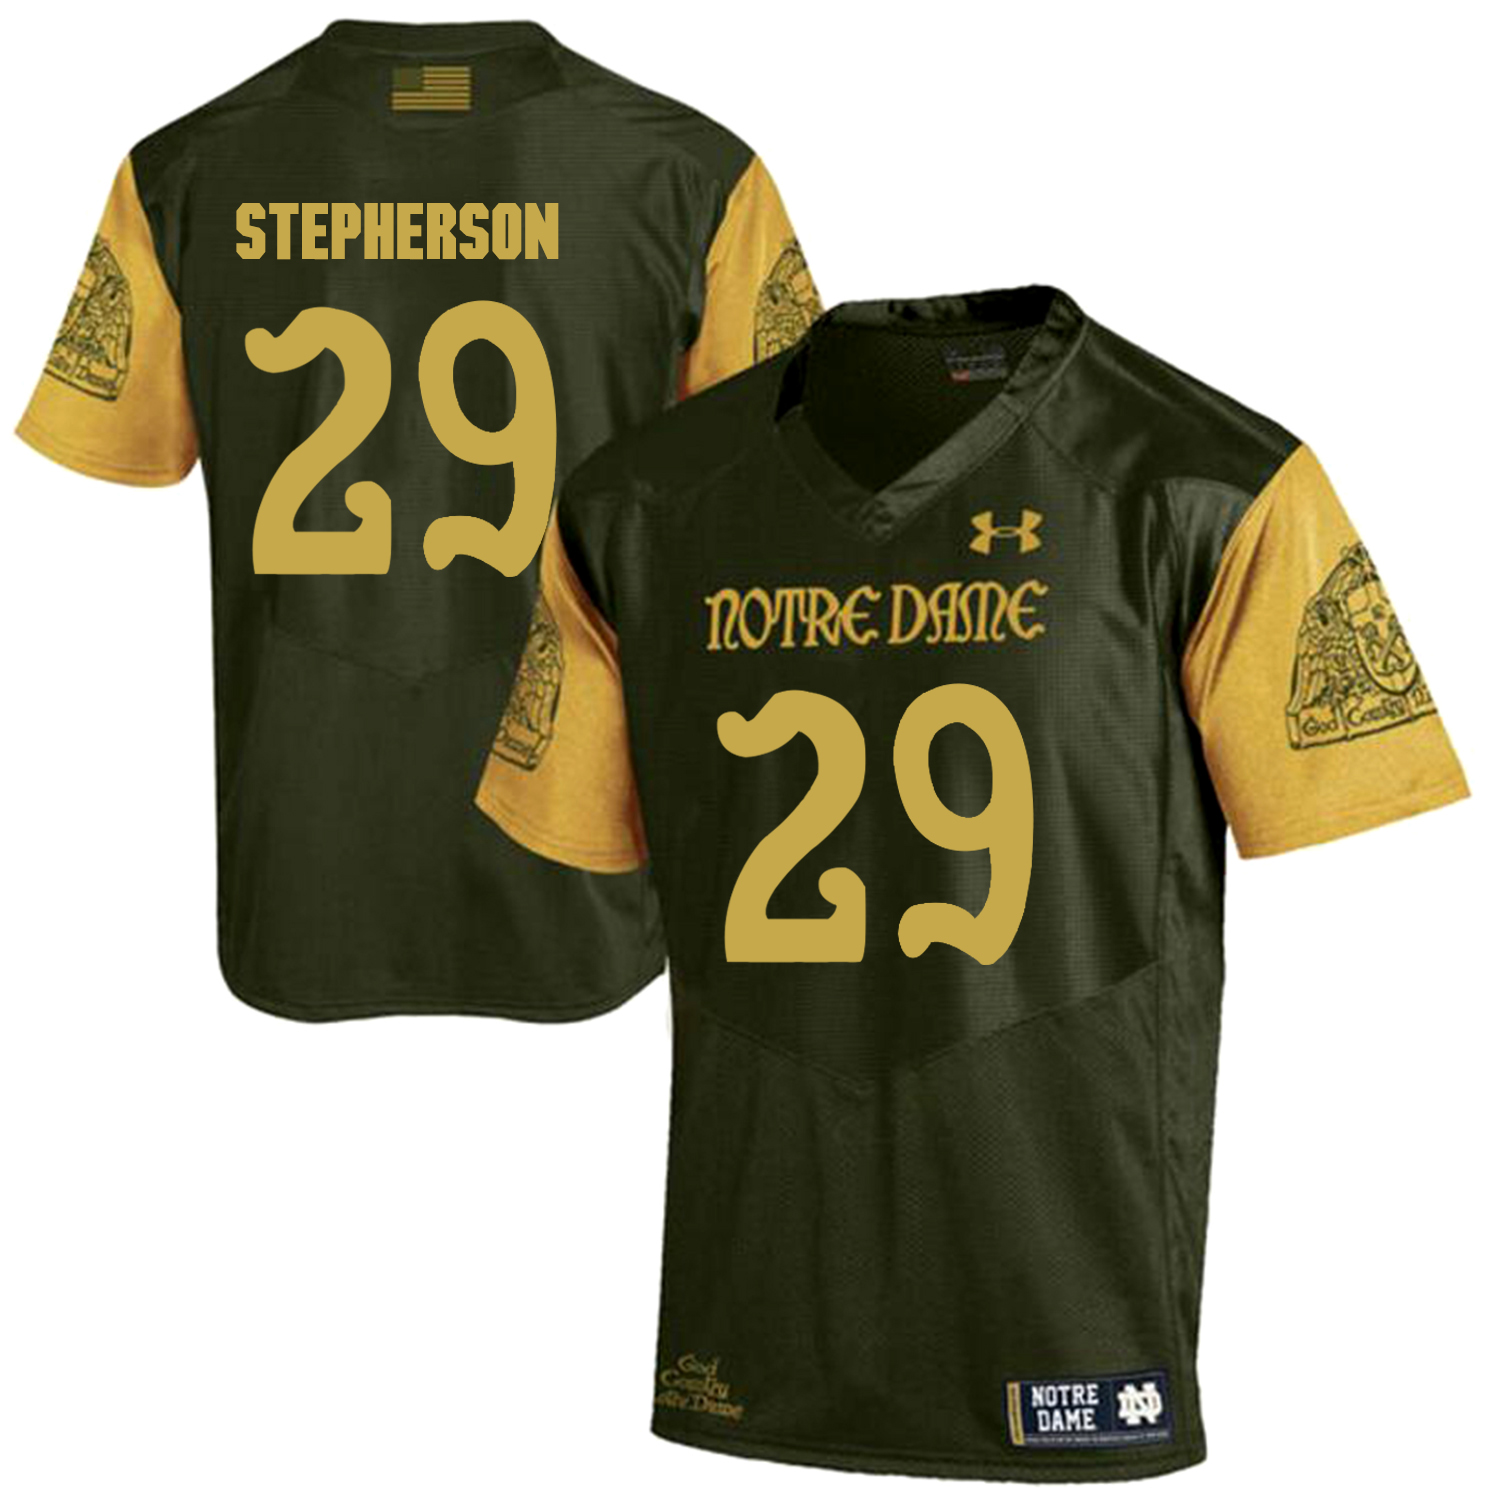 Notre Dame Fighting Irish 29 Kevin Stepherson Olive Green College Football Jersey